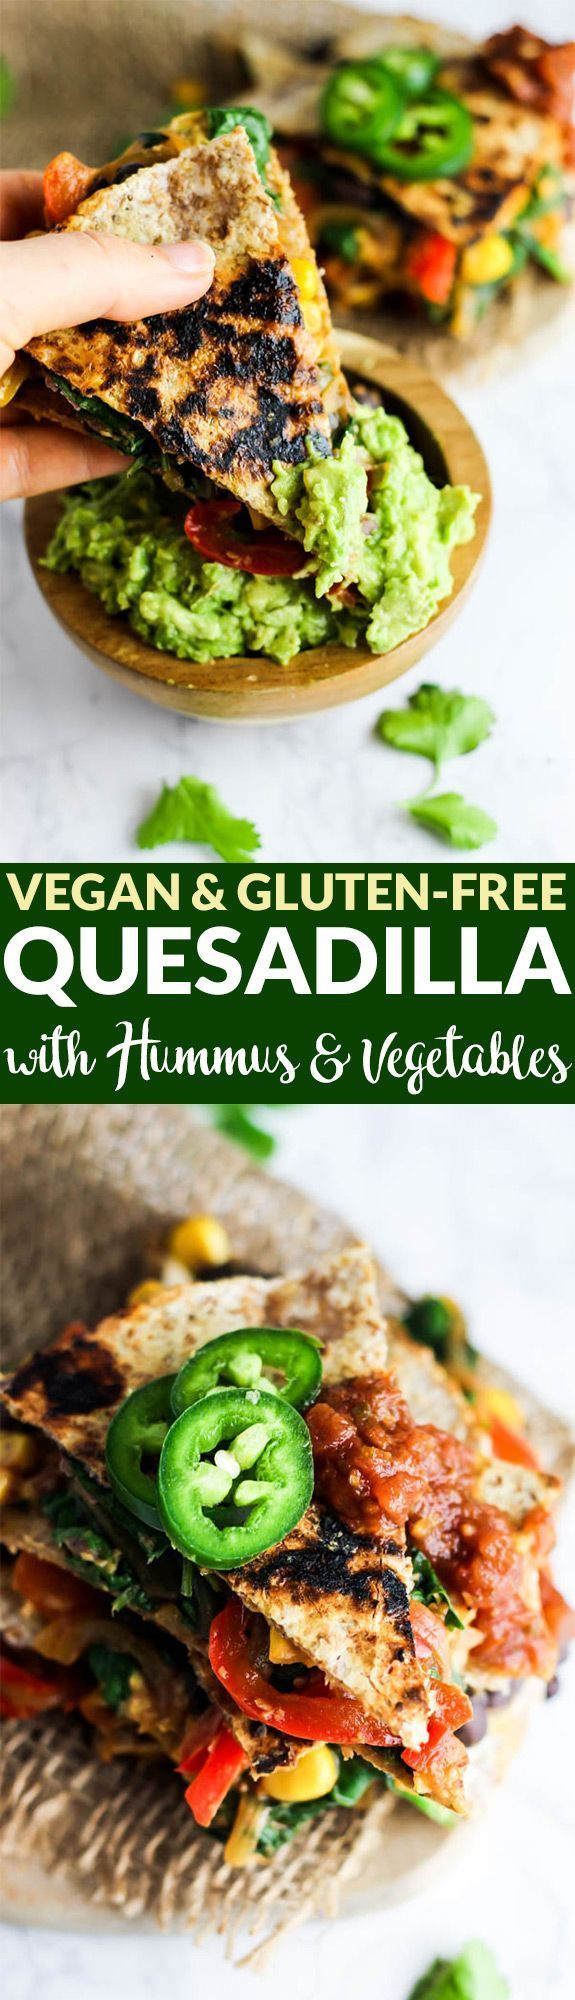 Enjoy this Vegan Quesadilla with Hummus & Vegetables for a healthy, flavorful meal or appetizer that is irresistible! Don't forget the guac. (gluten-free)